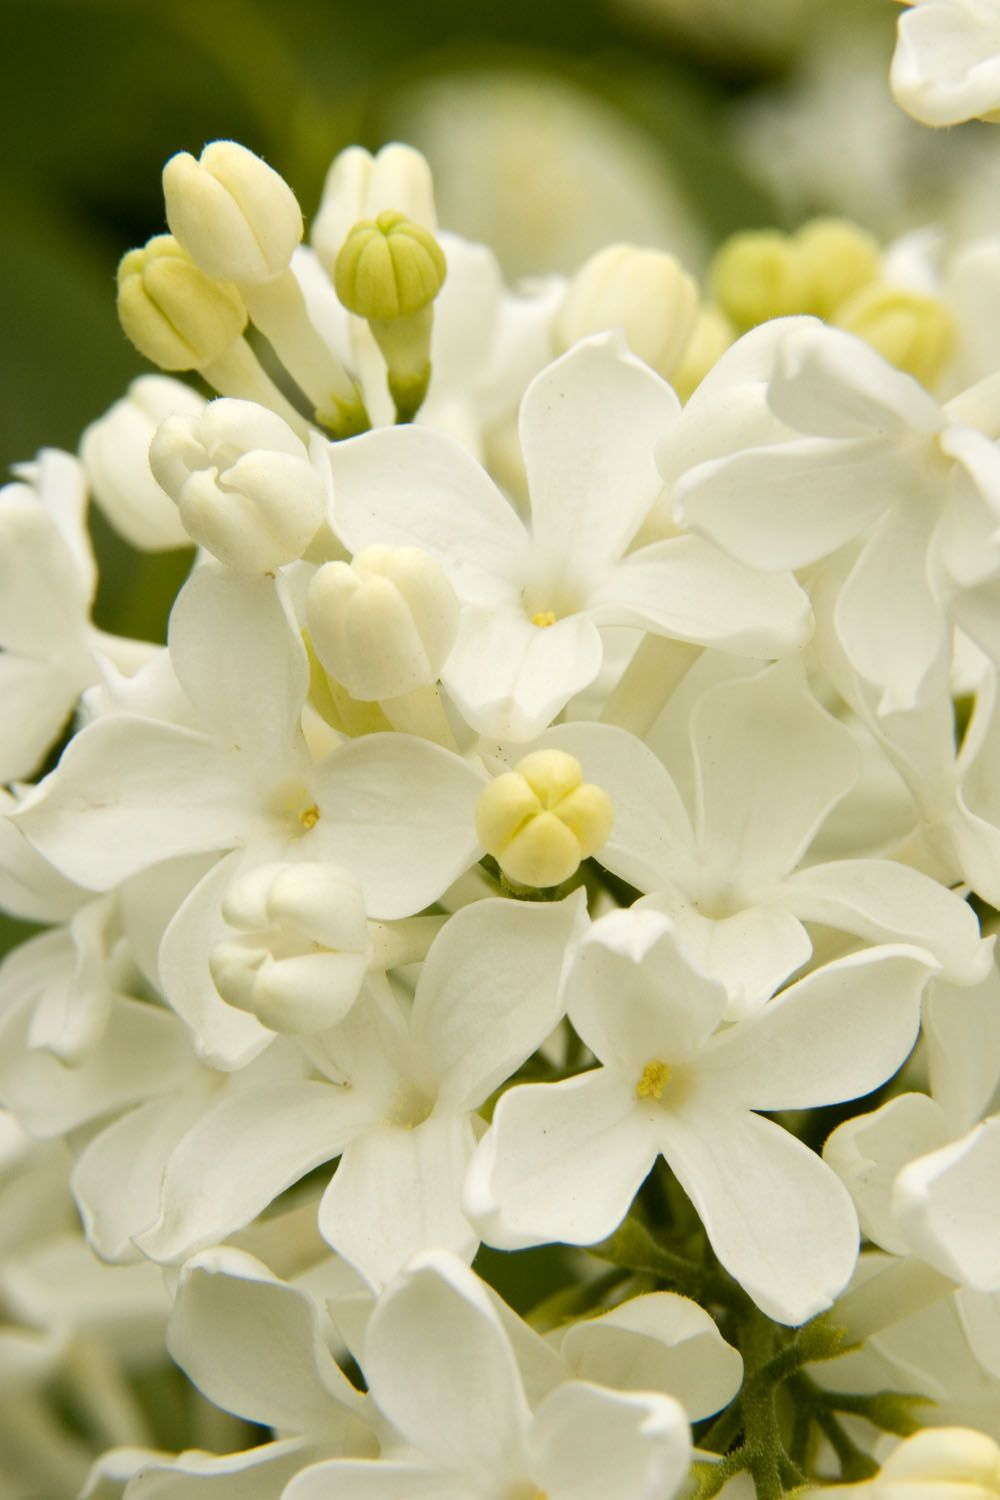 Angel White Lilac One Of The Best Lilacs For Warm Winter Areas Spectacular Clusters Of Fragrant Pure White Flowers Produced Lilac Tree Lilac Syringa Vulgaris